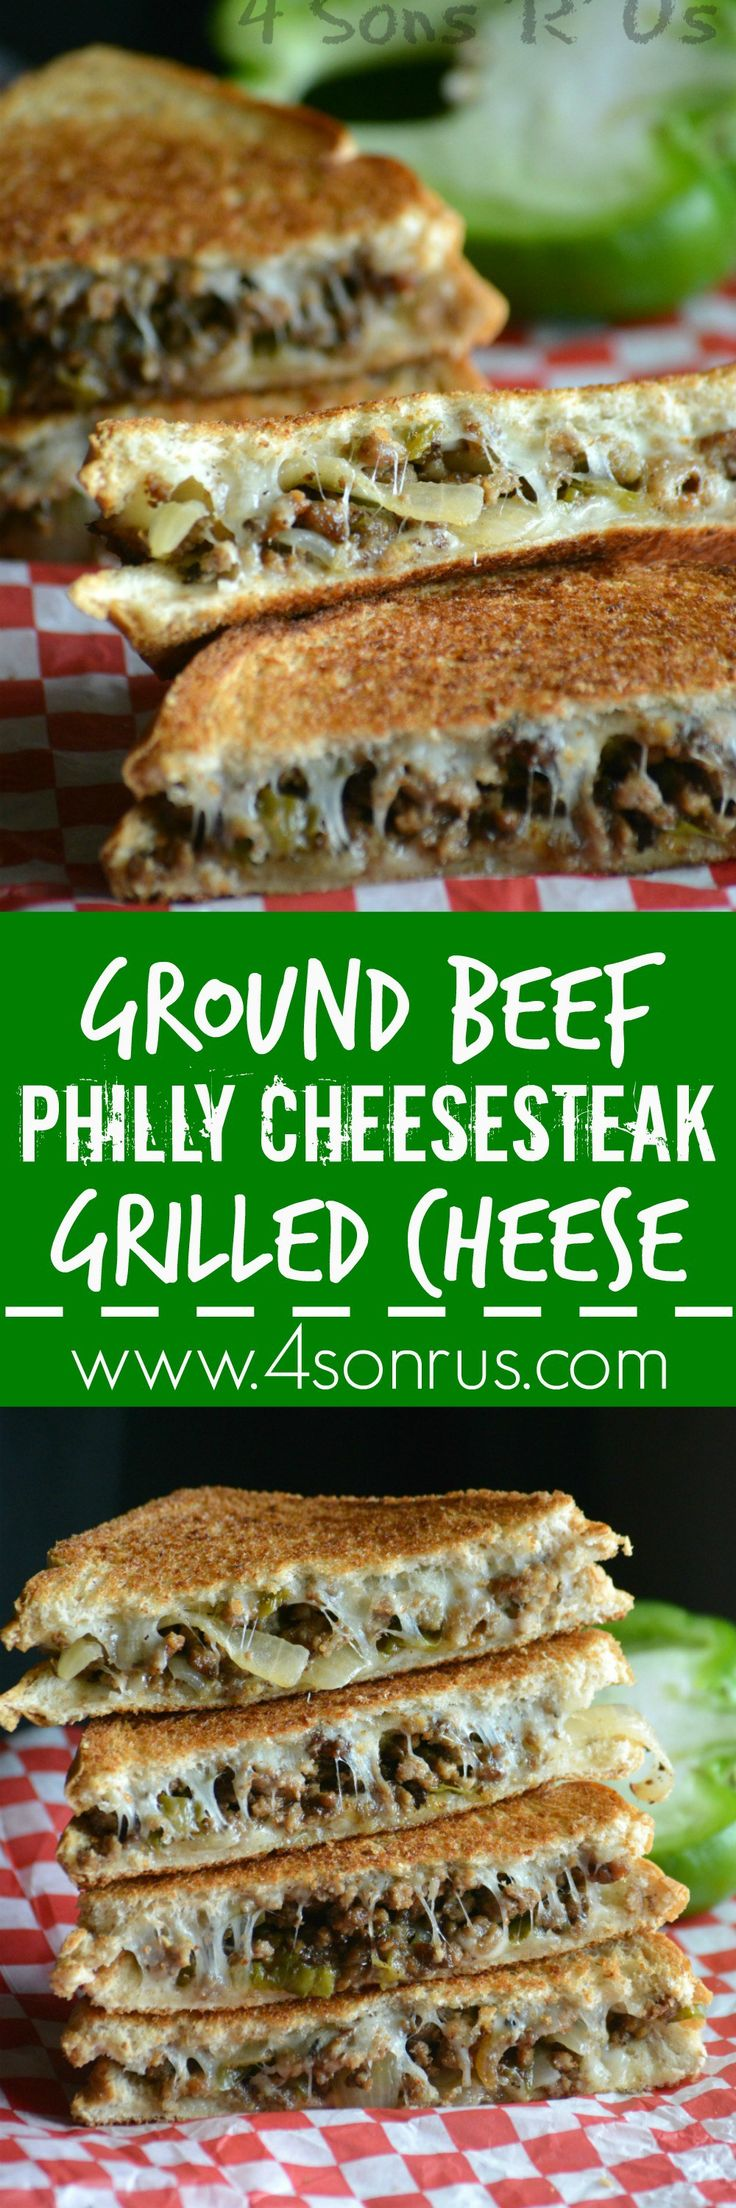 ground-beef-philly-cheesesteak-grilled-cheese-pin